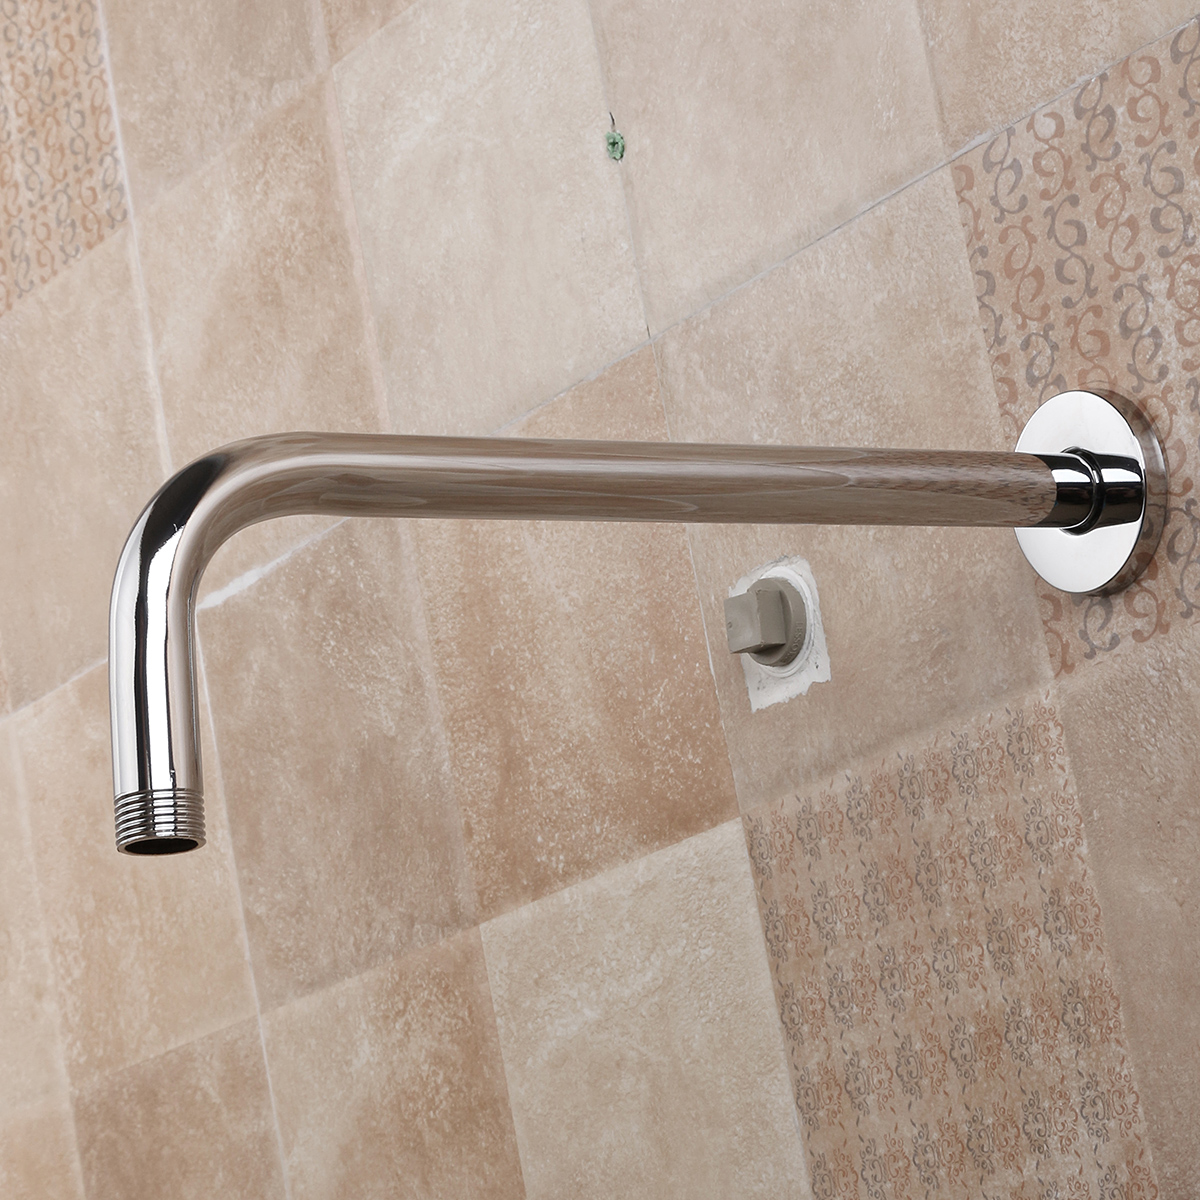 Stainless Steel Shower Extension Arm Home Bathroom Wall Mounted Shower Head Pipe